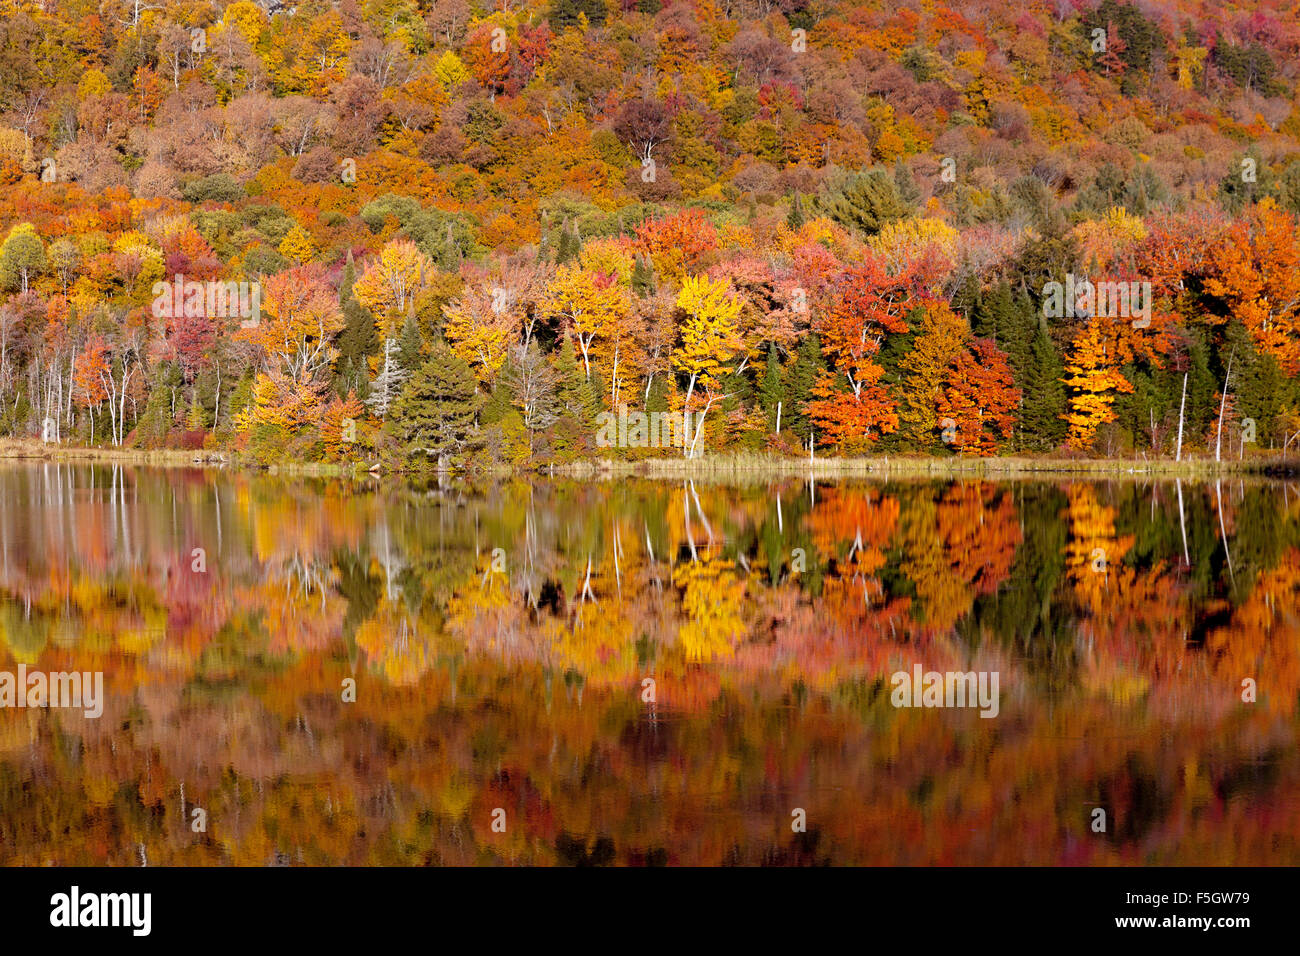 autumn-trees-foliage-and-their-reflectio